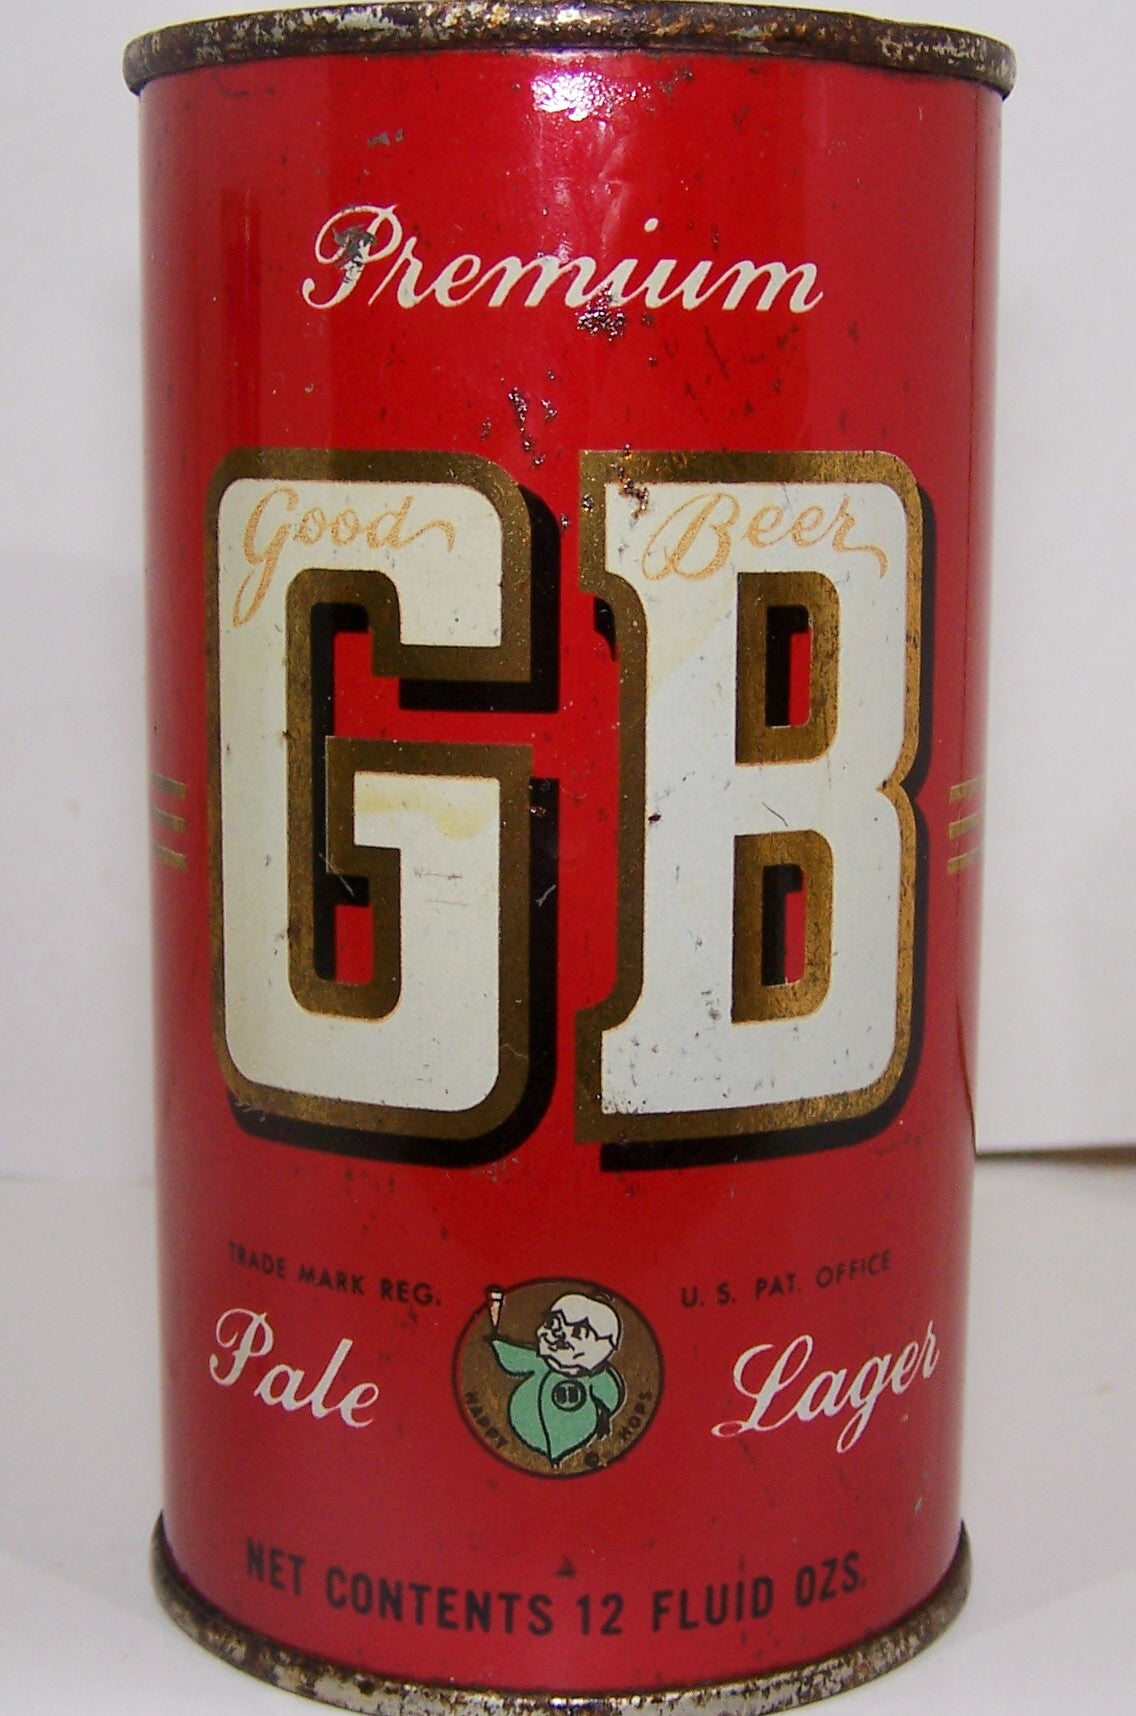 GB Pale Lager Beer, USBC 67-36,Grade 1- Sold on 04/30/18